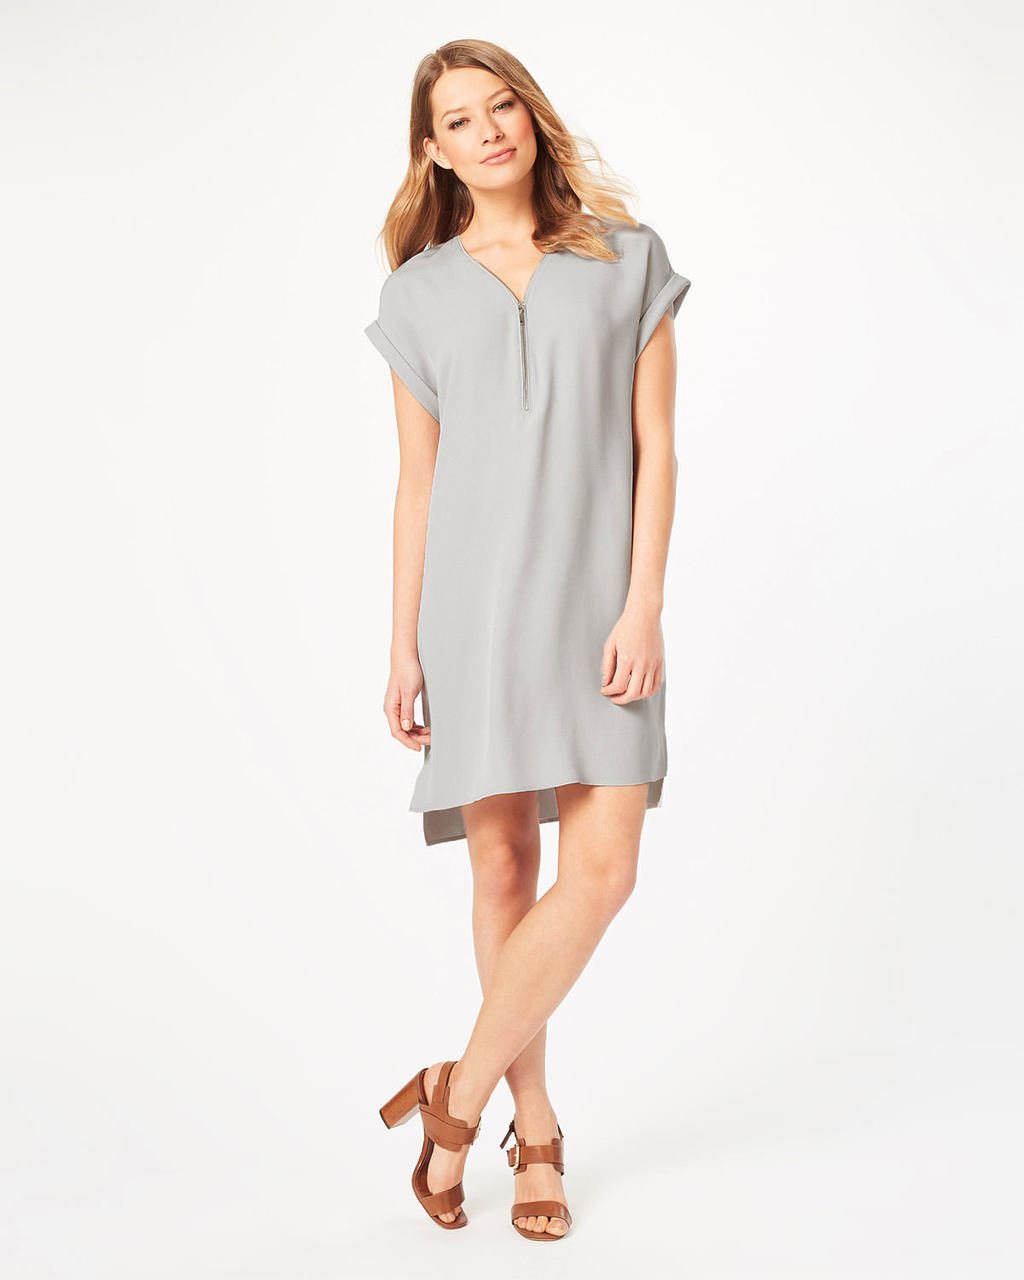 Remi Crepe Dress - style: shift; neckline: v-neck; pattern: plain; predominant colour: light grey; occasions: casual, creative work; length: just above the knee; fit: body skimming; sleeve length: short sleeve; sleeve style: standard; texture group: crepes; pattern type: fabric; fibres: viscose/rayon - mix; season: s/s 2016; wardrobe: basic